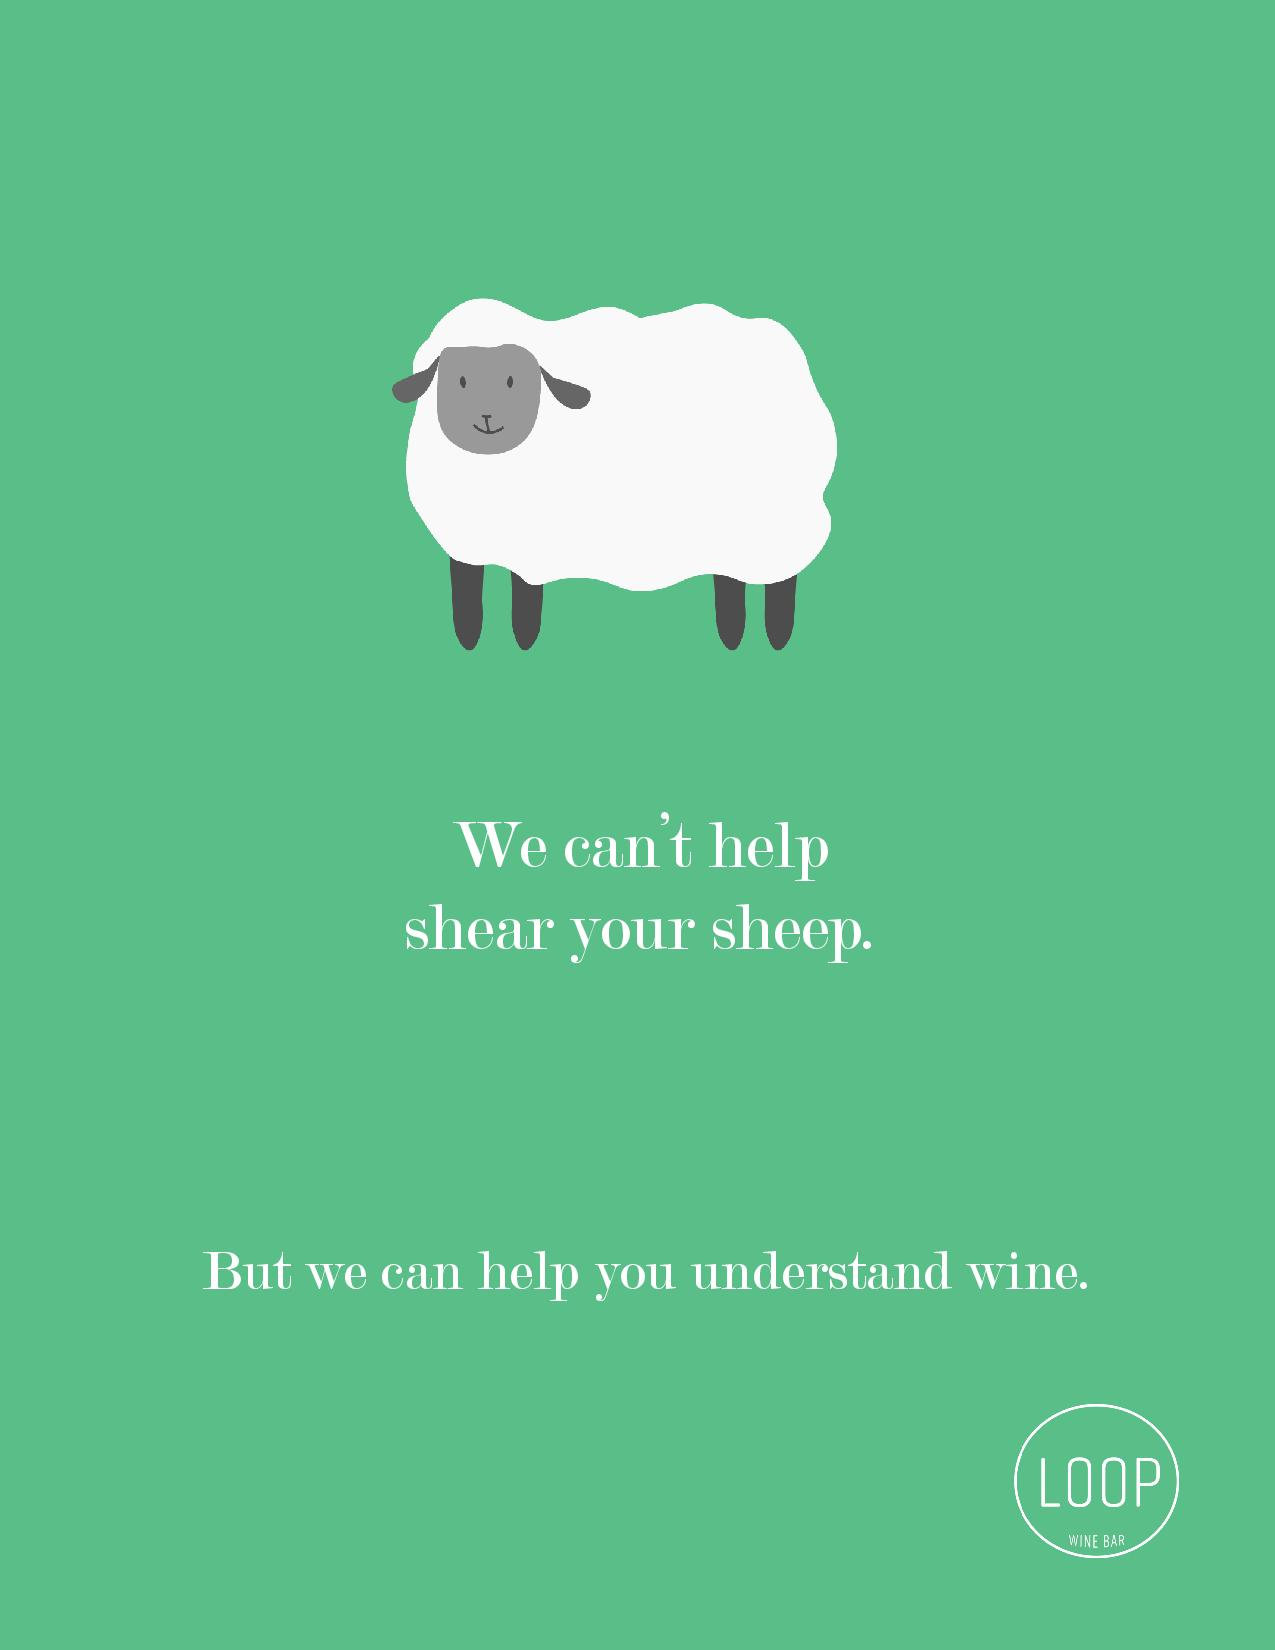 sheep_poster_alt fixed-page-001.jpg